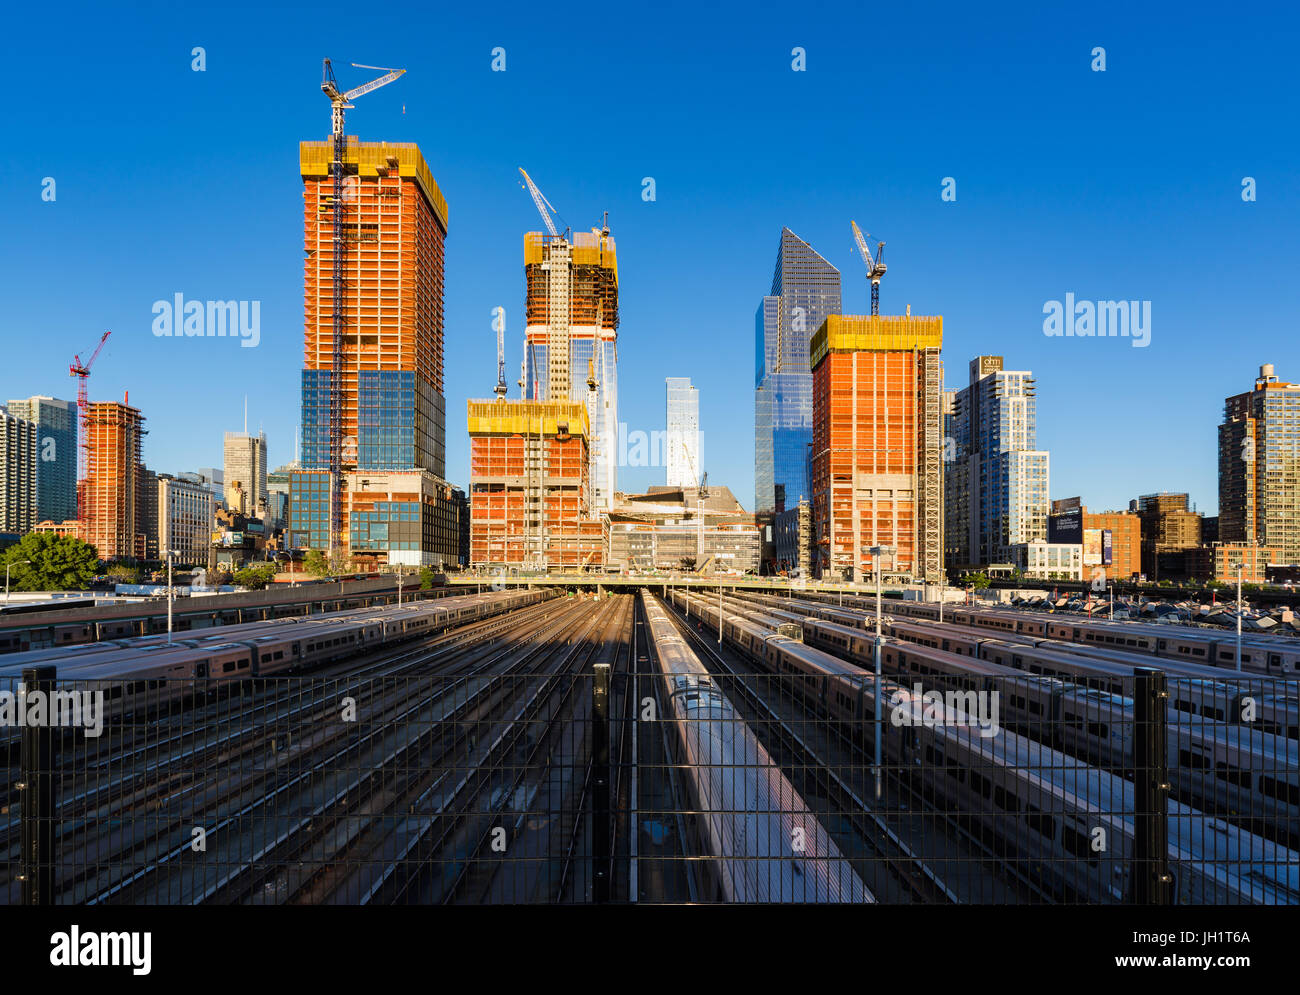 The Hudson Yards construction site with railway tracks (2017). Midtown, Manhattan, New York City Stock Photo